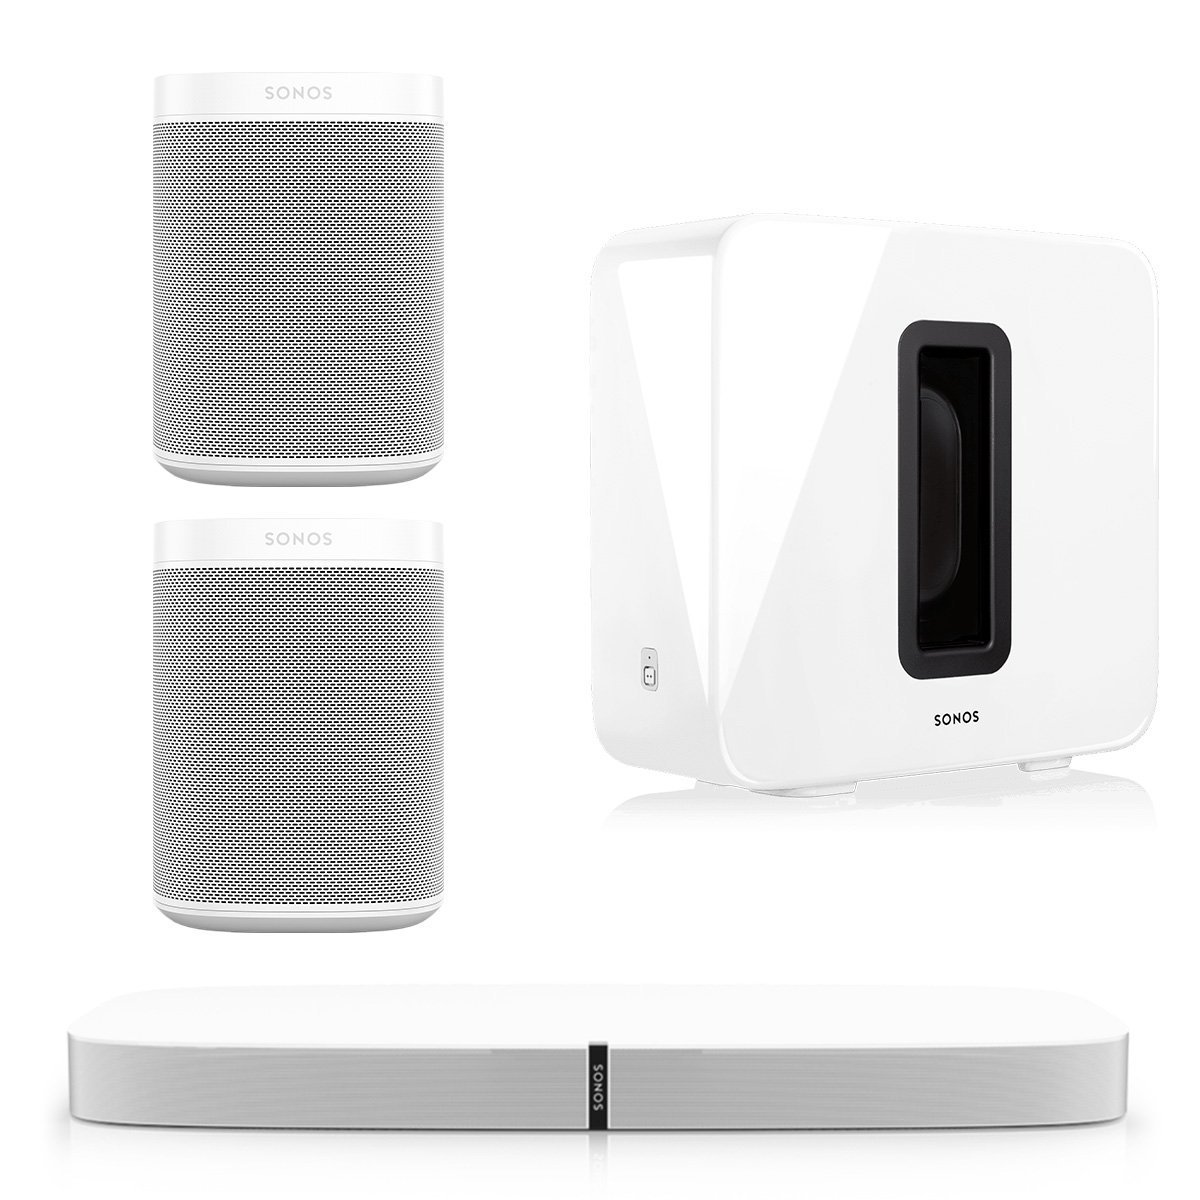 Sonos 5.1 PLAYBASE Home Theater System with Sonos ONE Streaming Speakers (Pair) and SUB Wireless Subwoofer (White) by Sonos